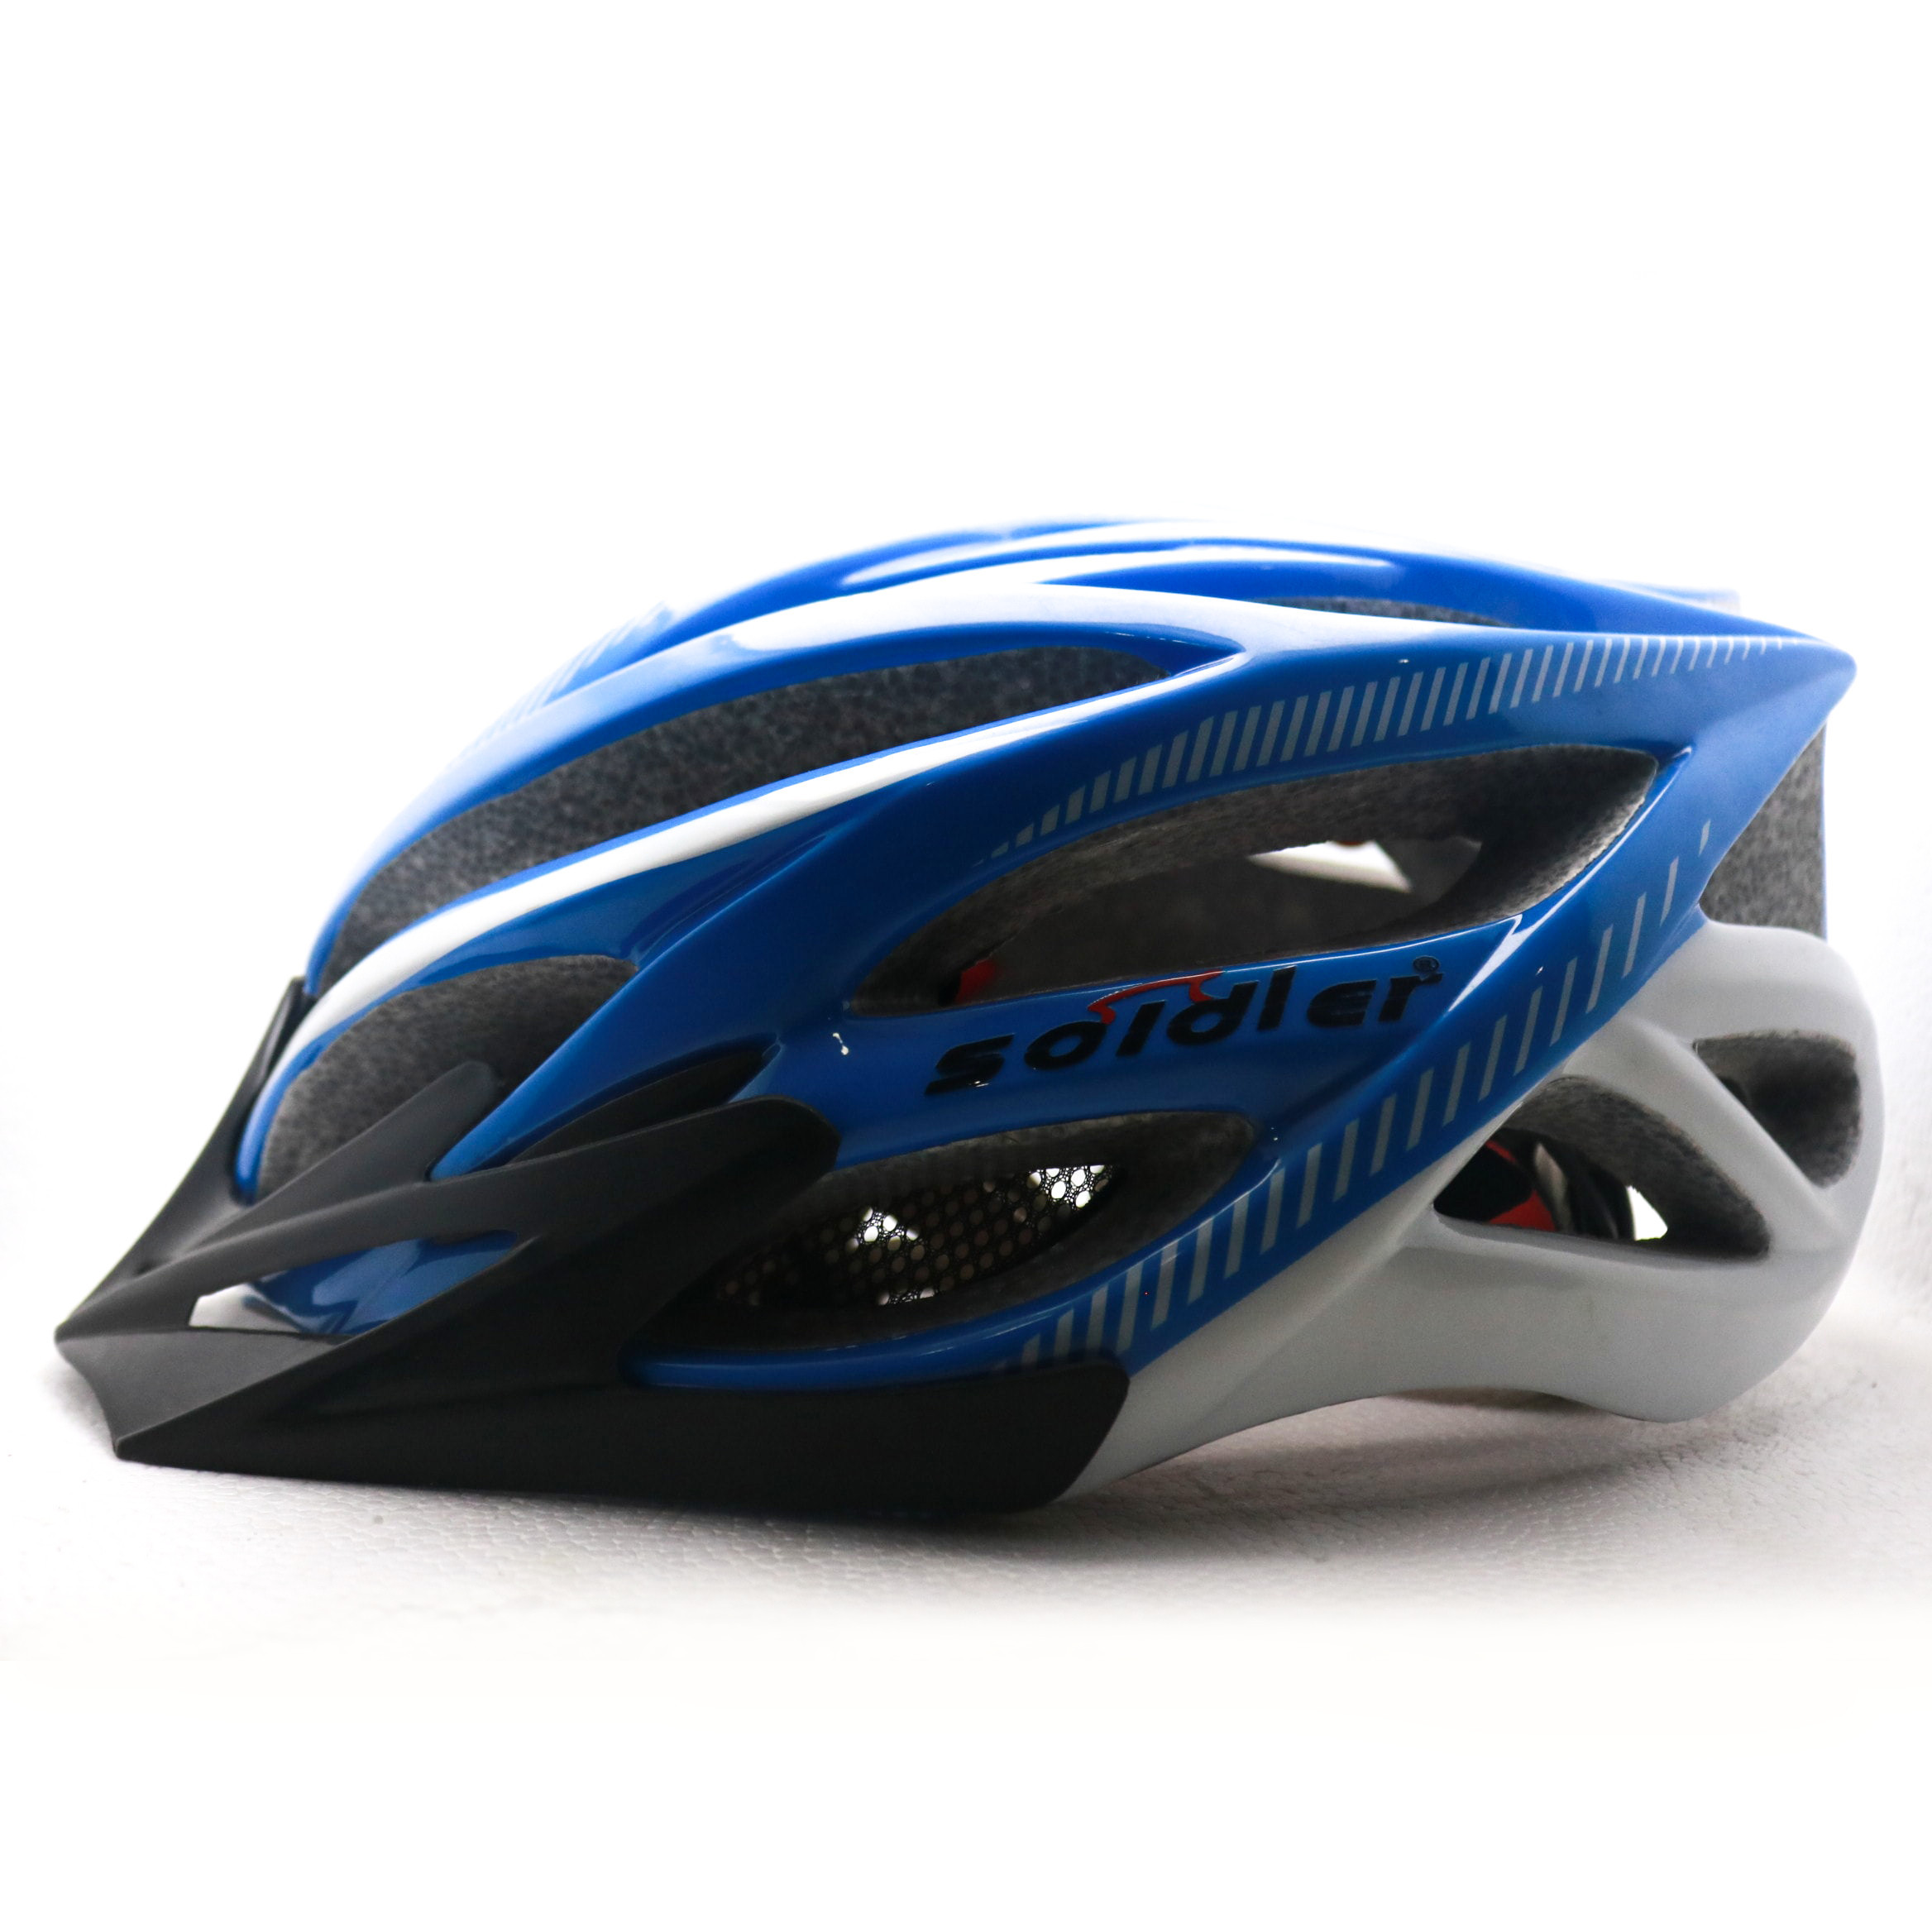 Cycling Helmet - Blue (Soldier) with LED Light